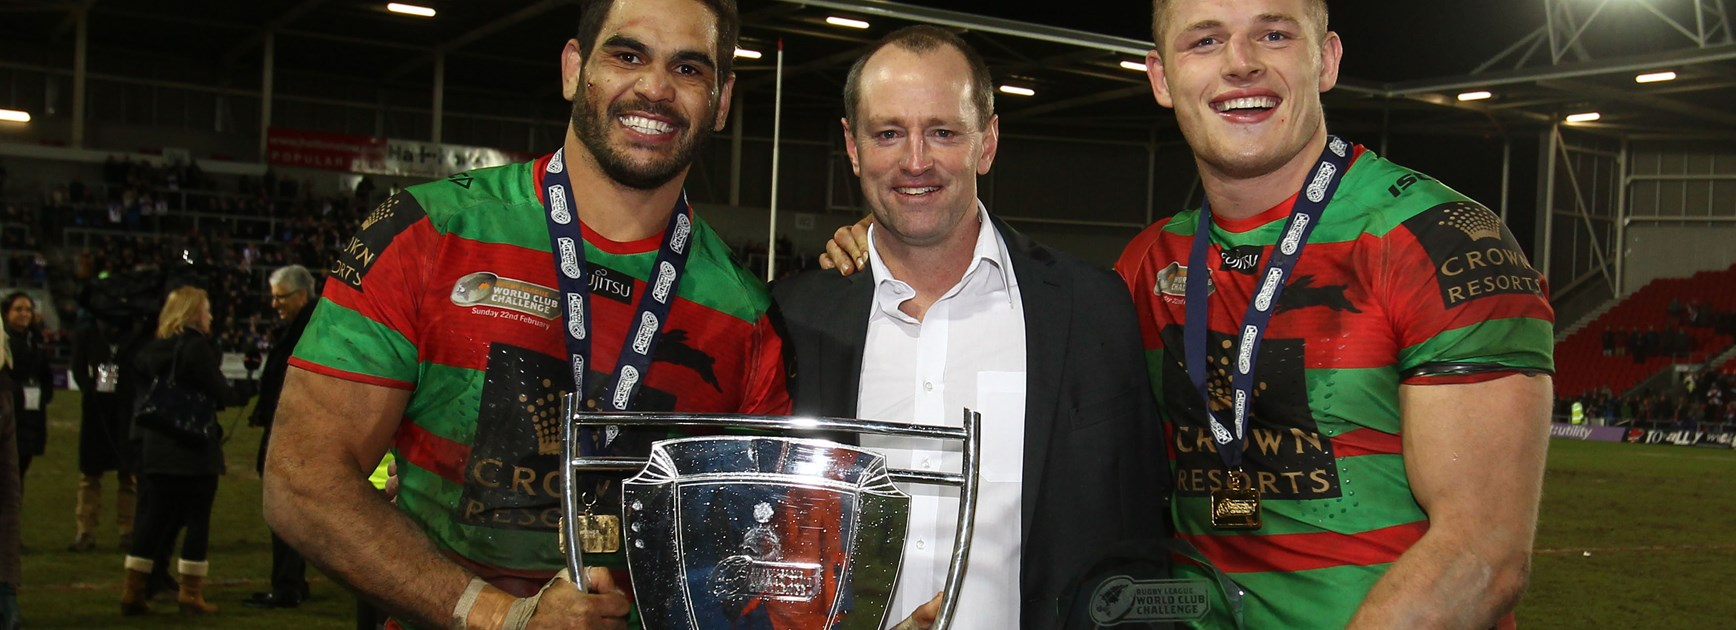 February 22: Rabbitohs rule the world; 100 greatest players named